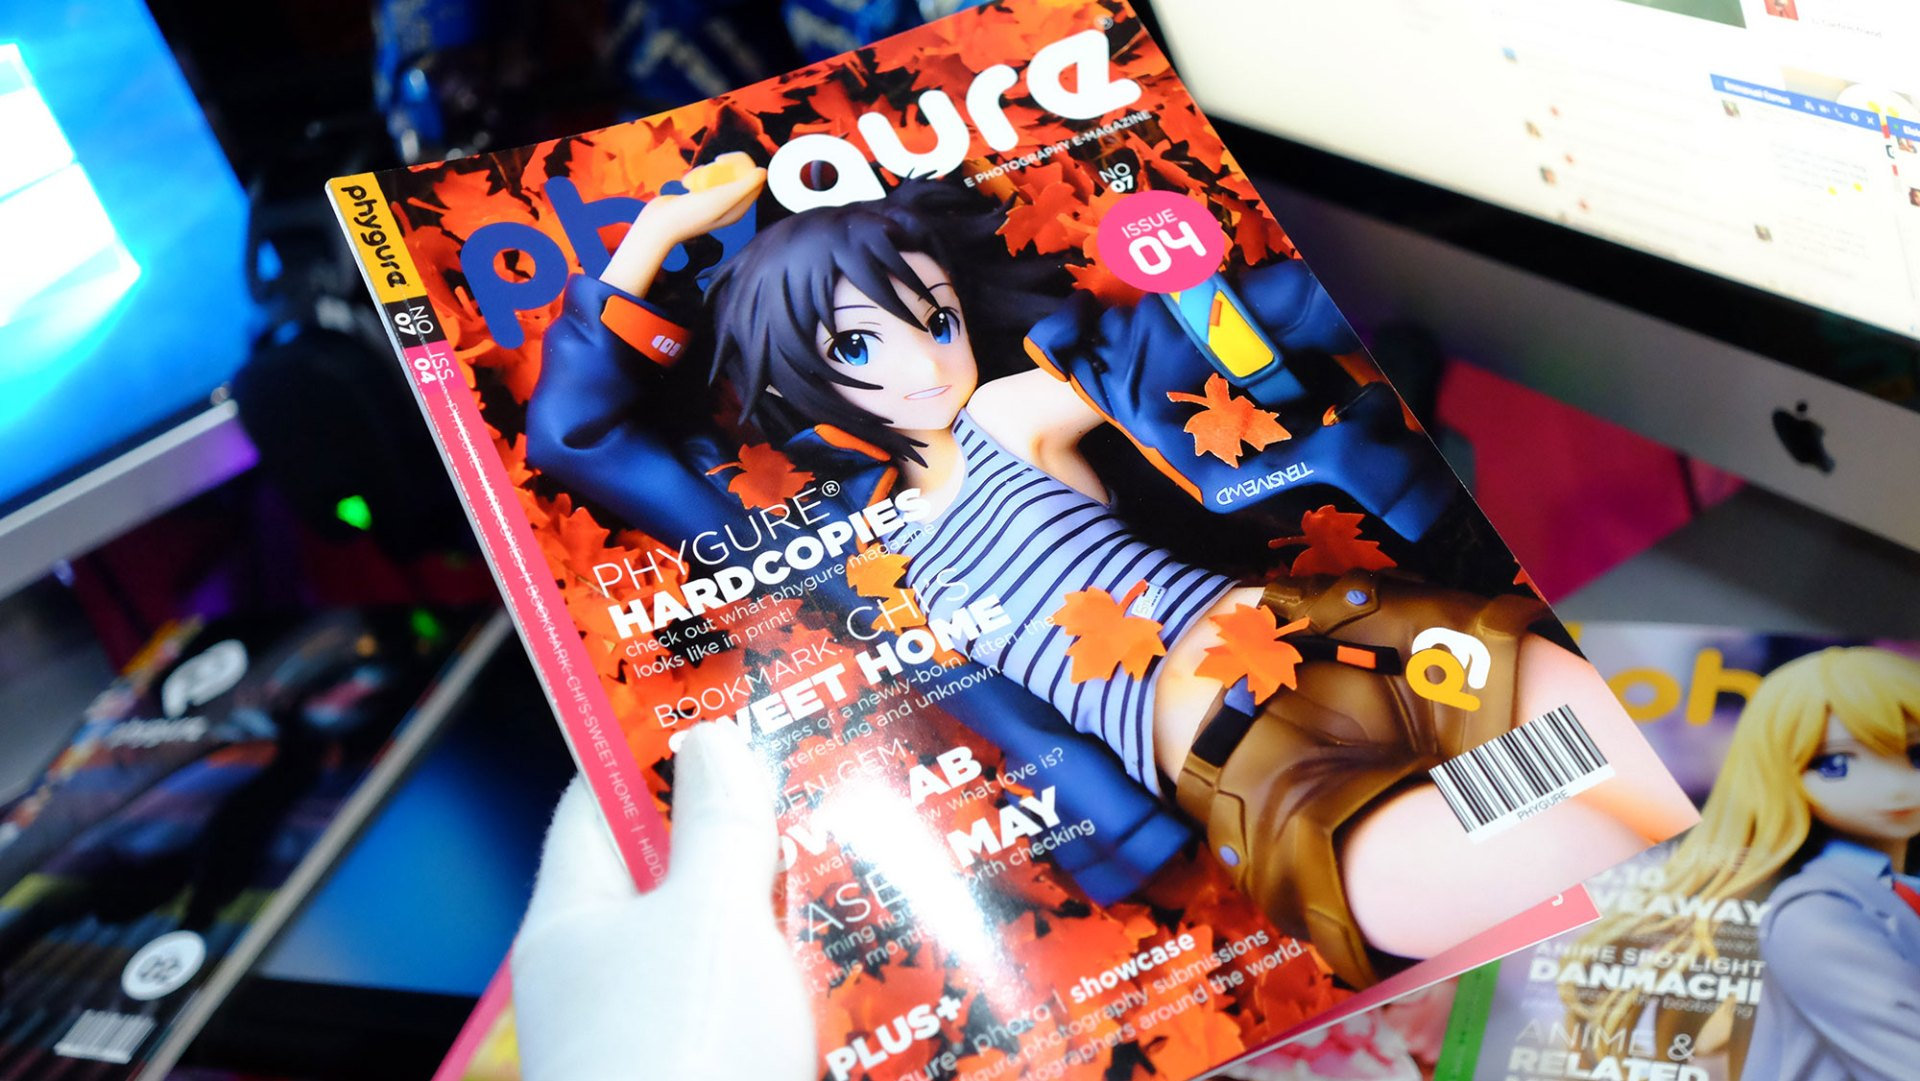 Up close shot of the physical version of Phygure magazine.